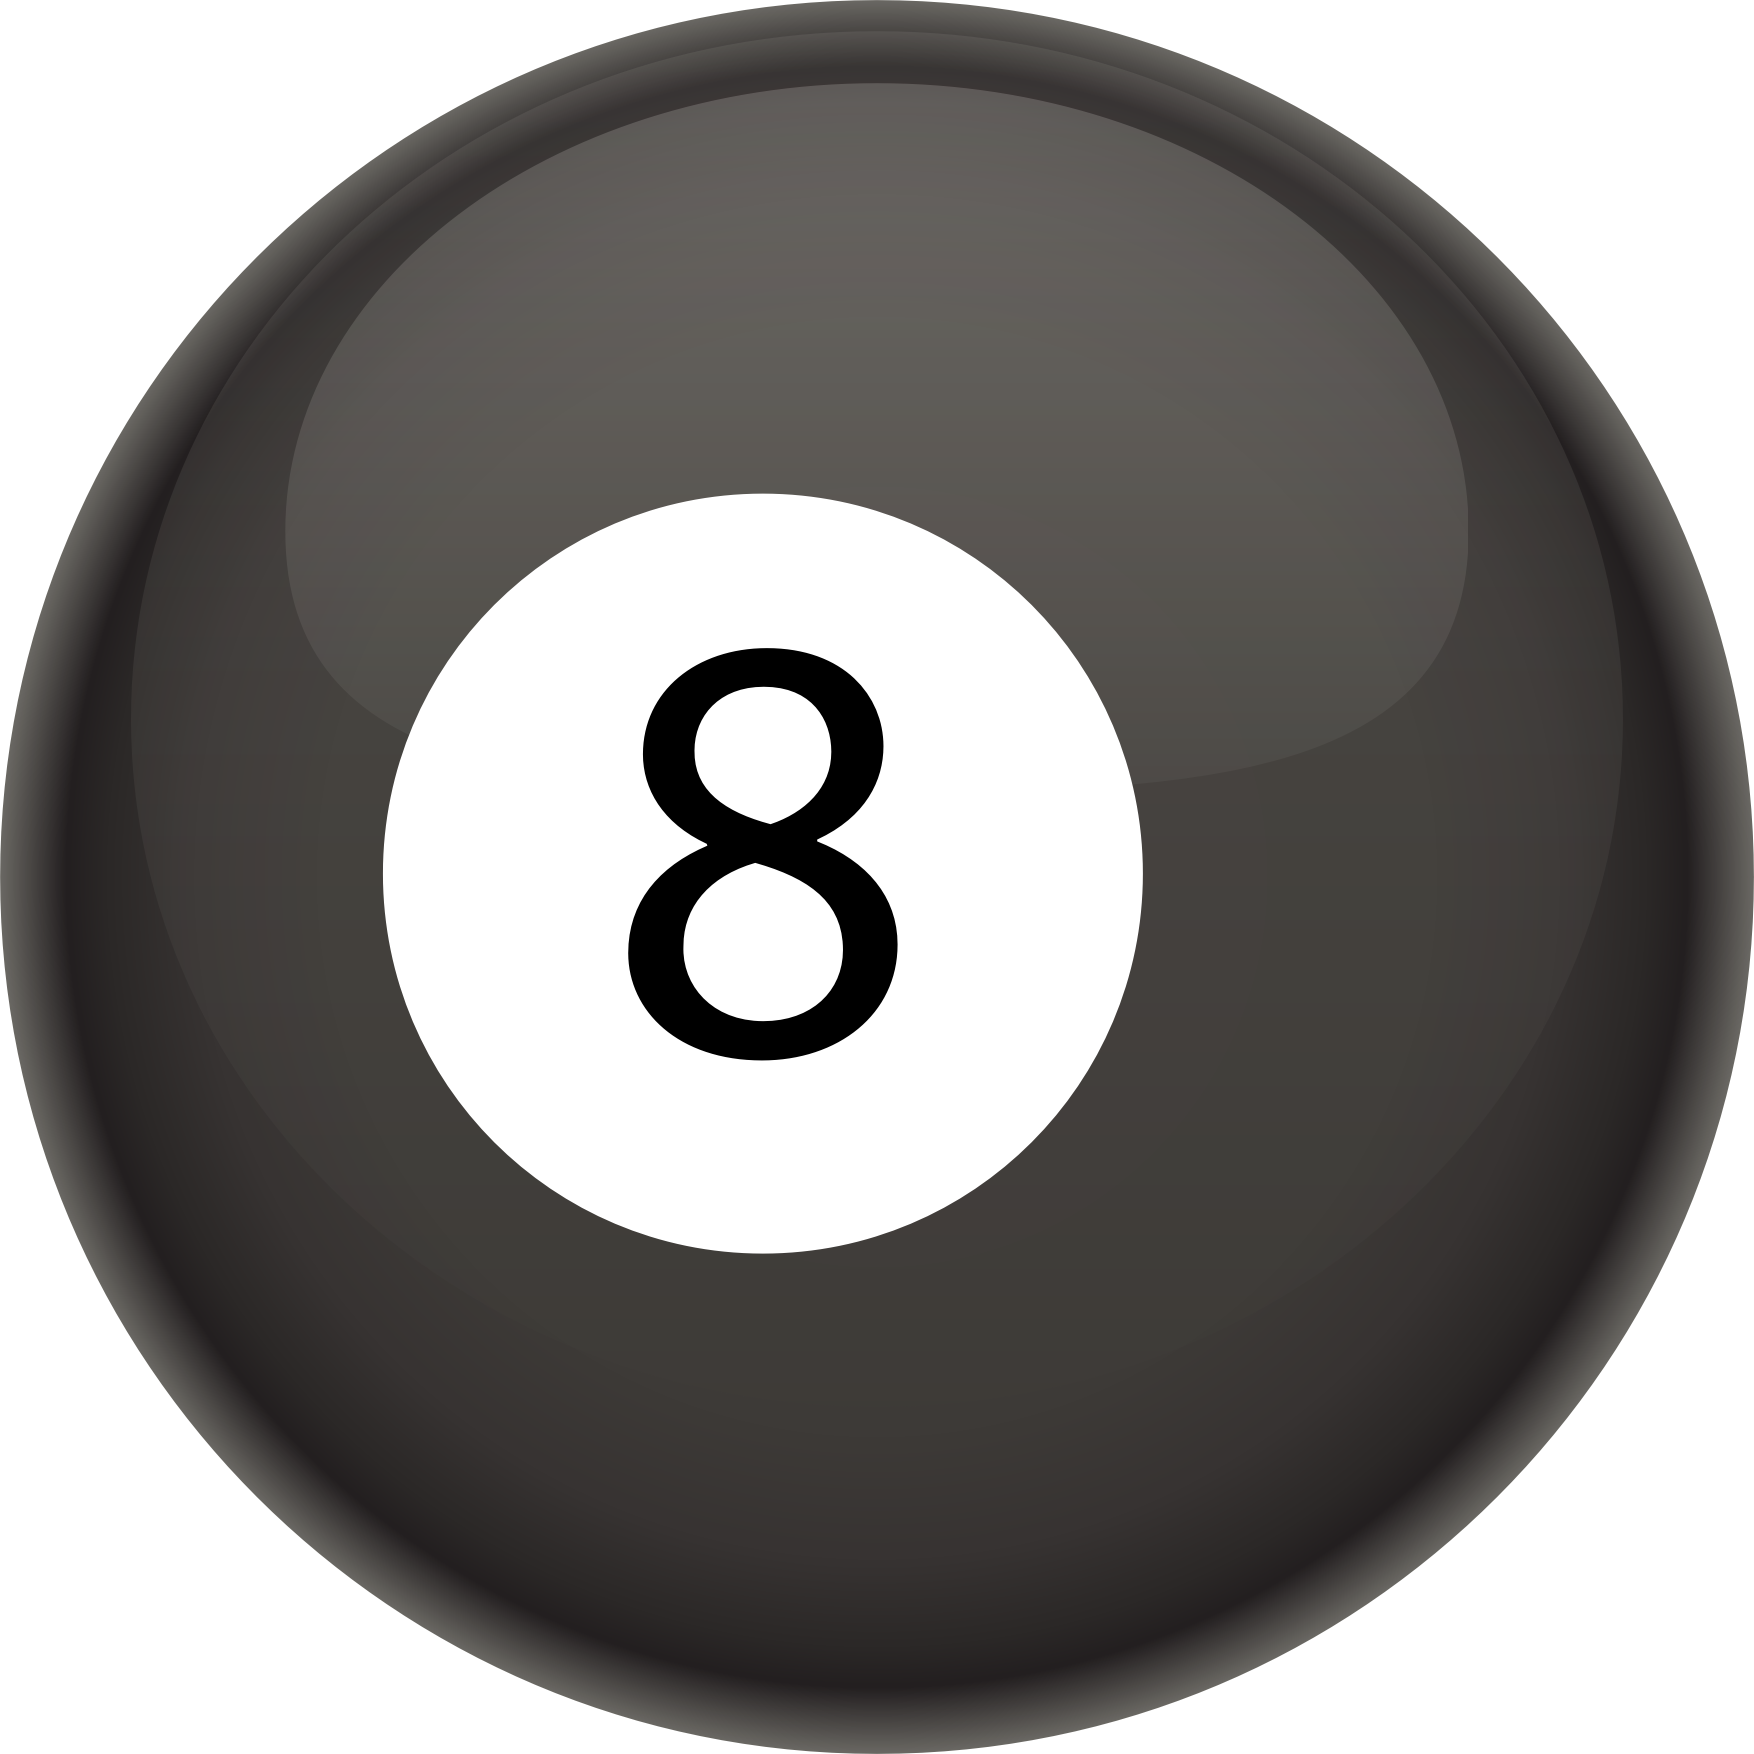 Eight ball pics clipart best - 8 ball pictures ...